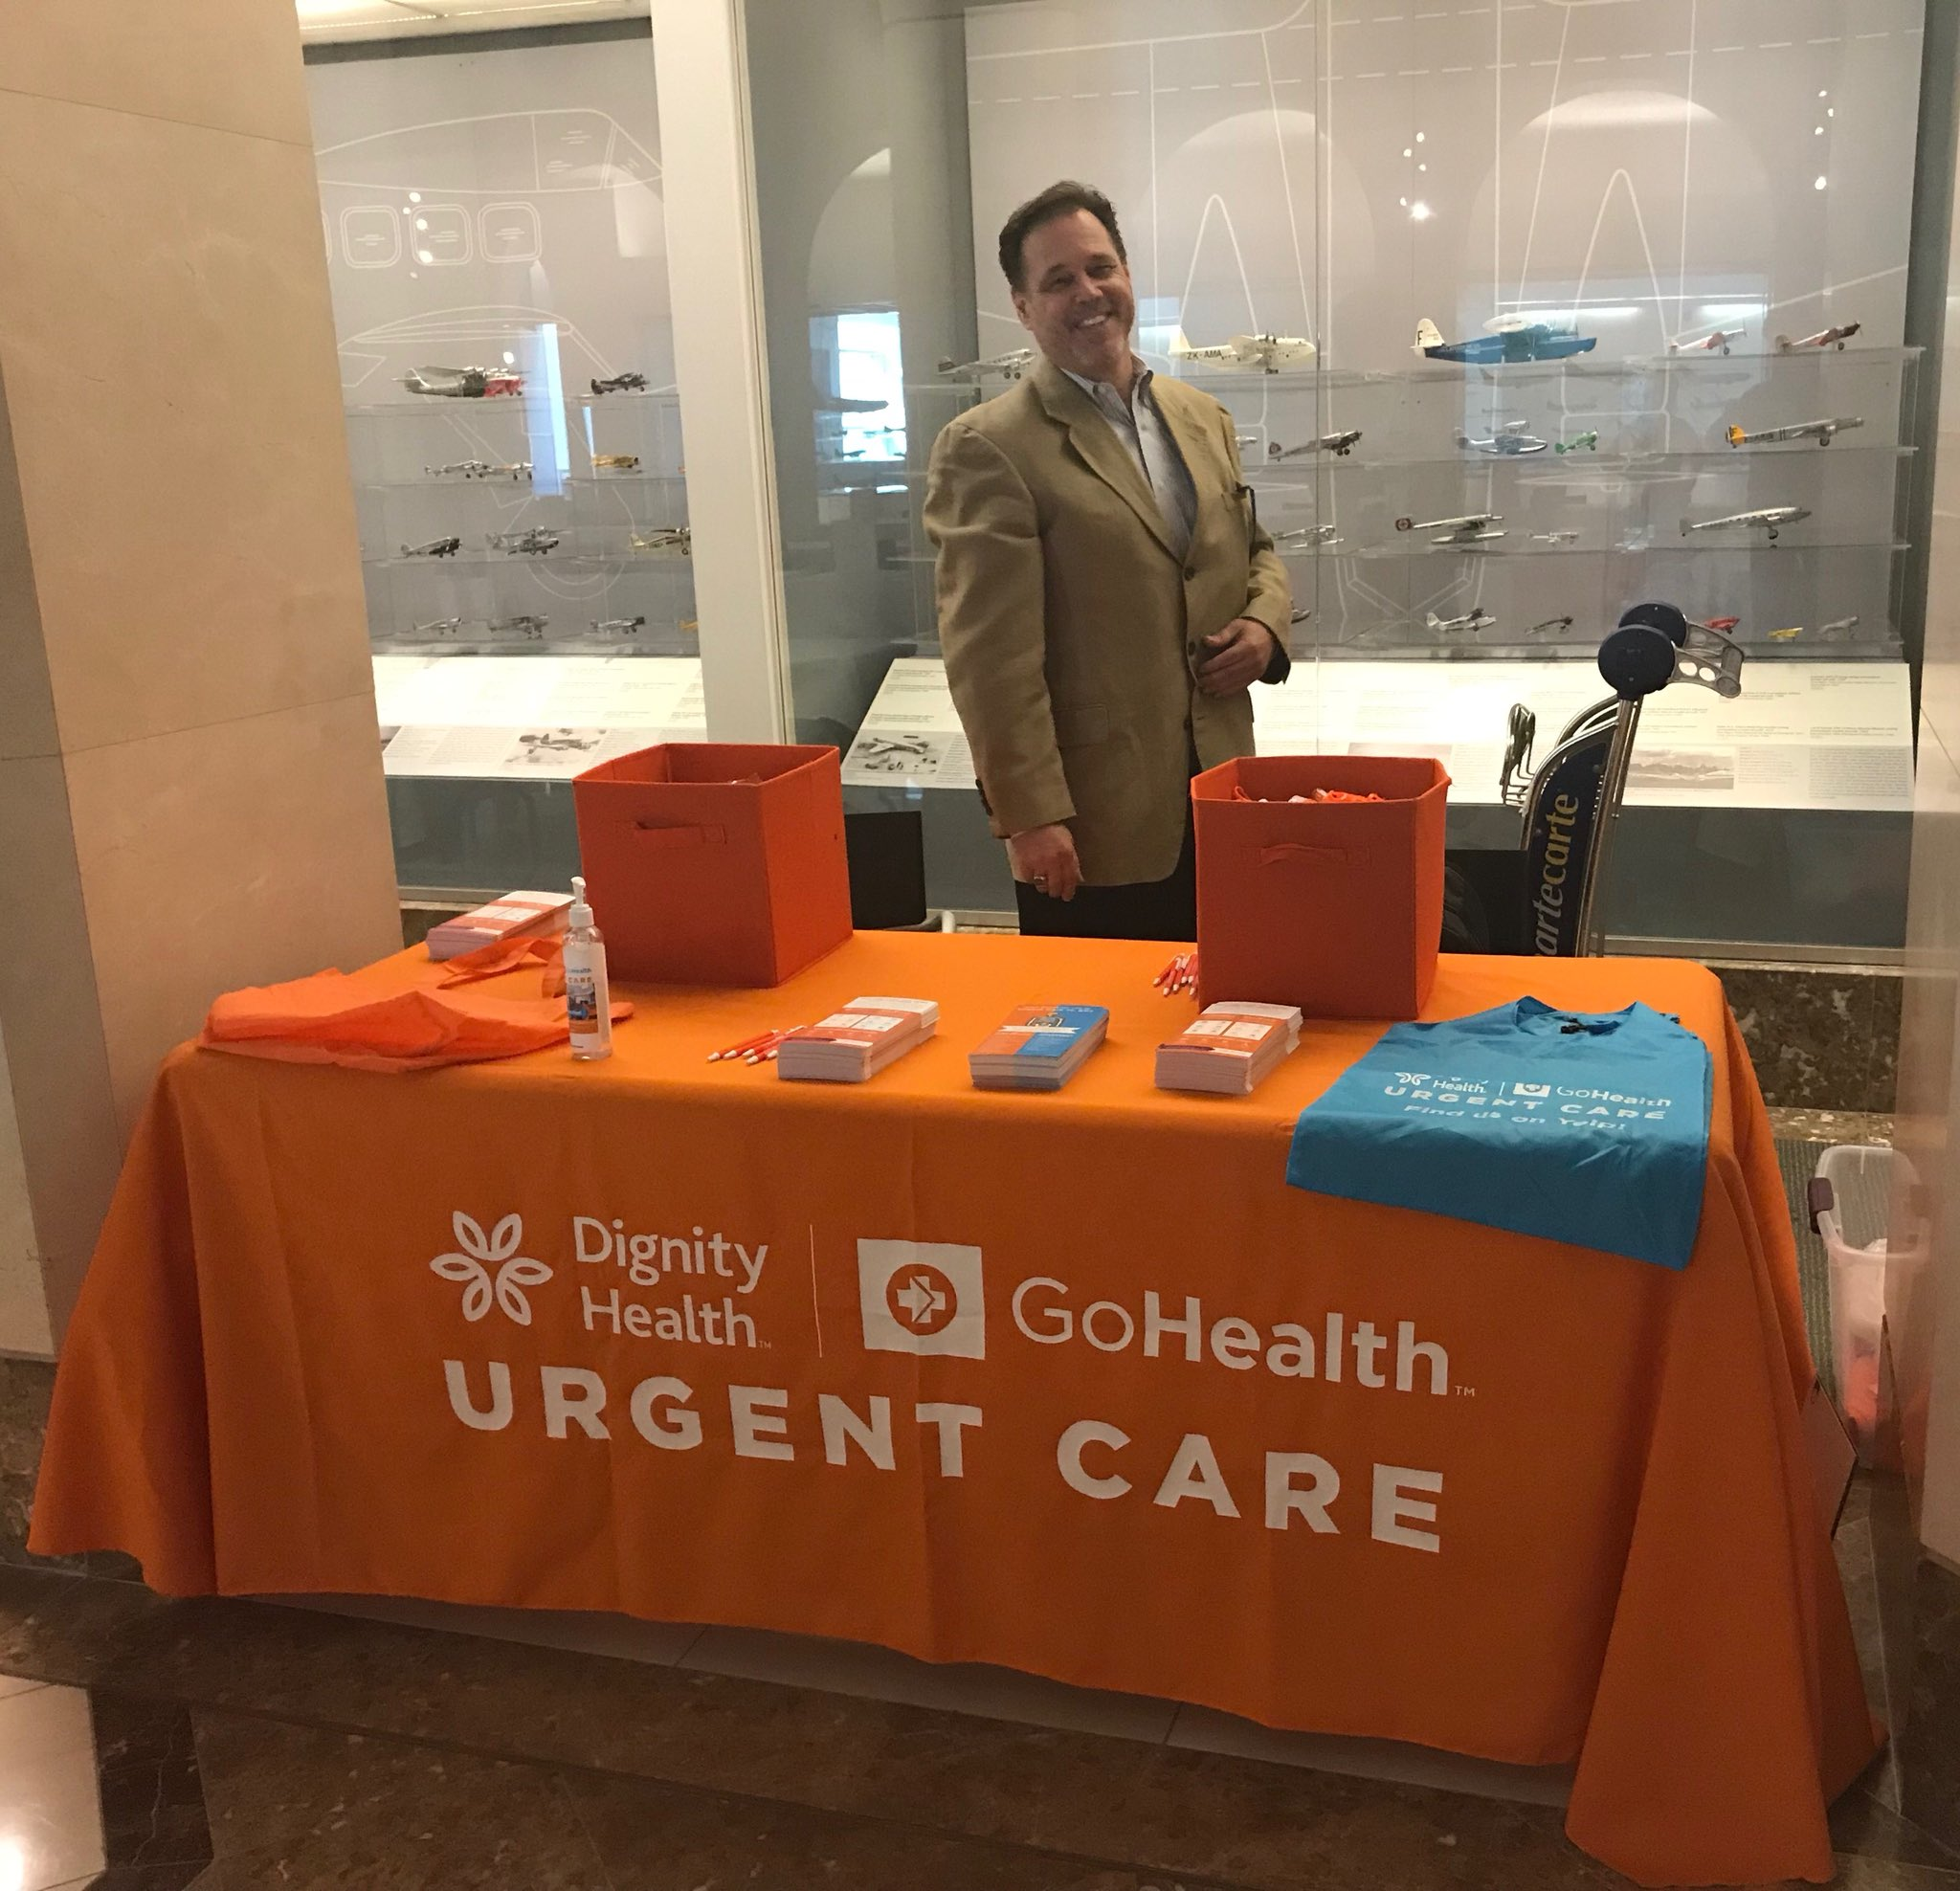 Dignity Health-GoHealth Urgent Care on Twitter: